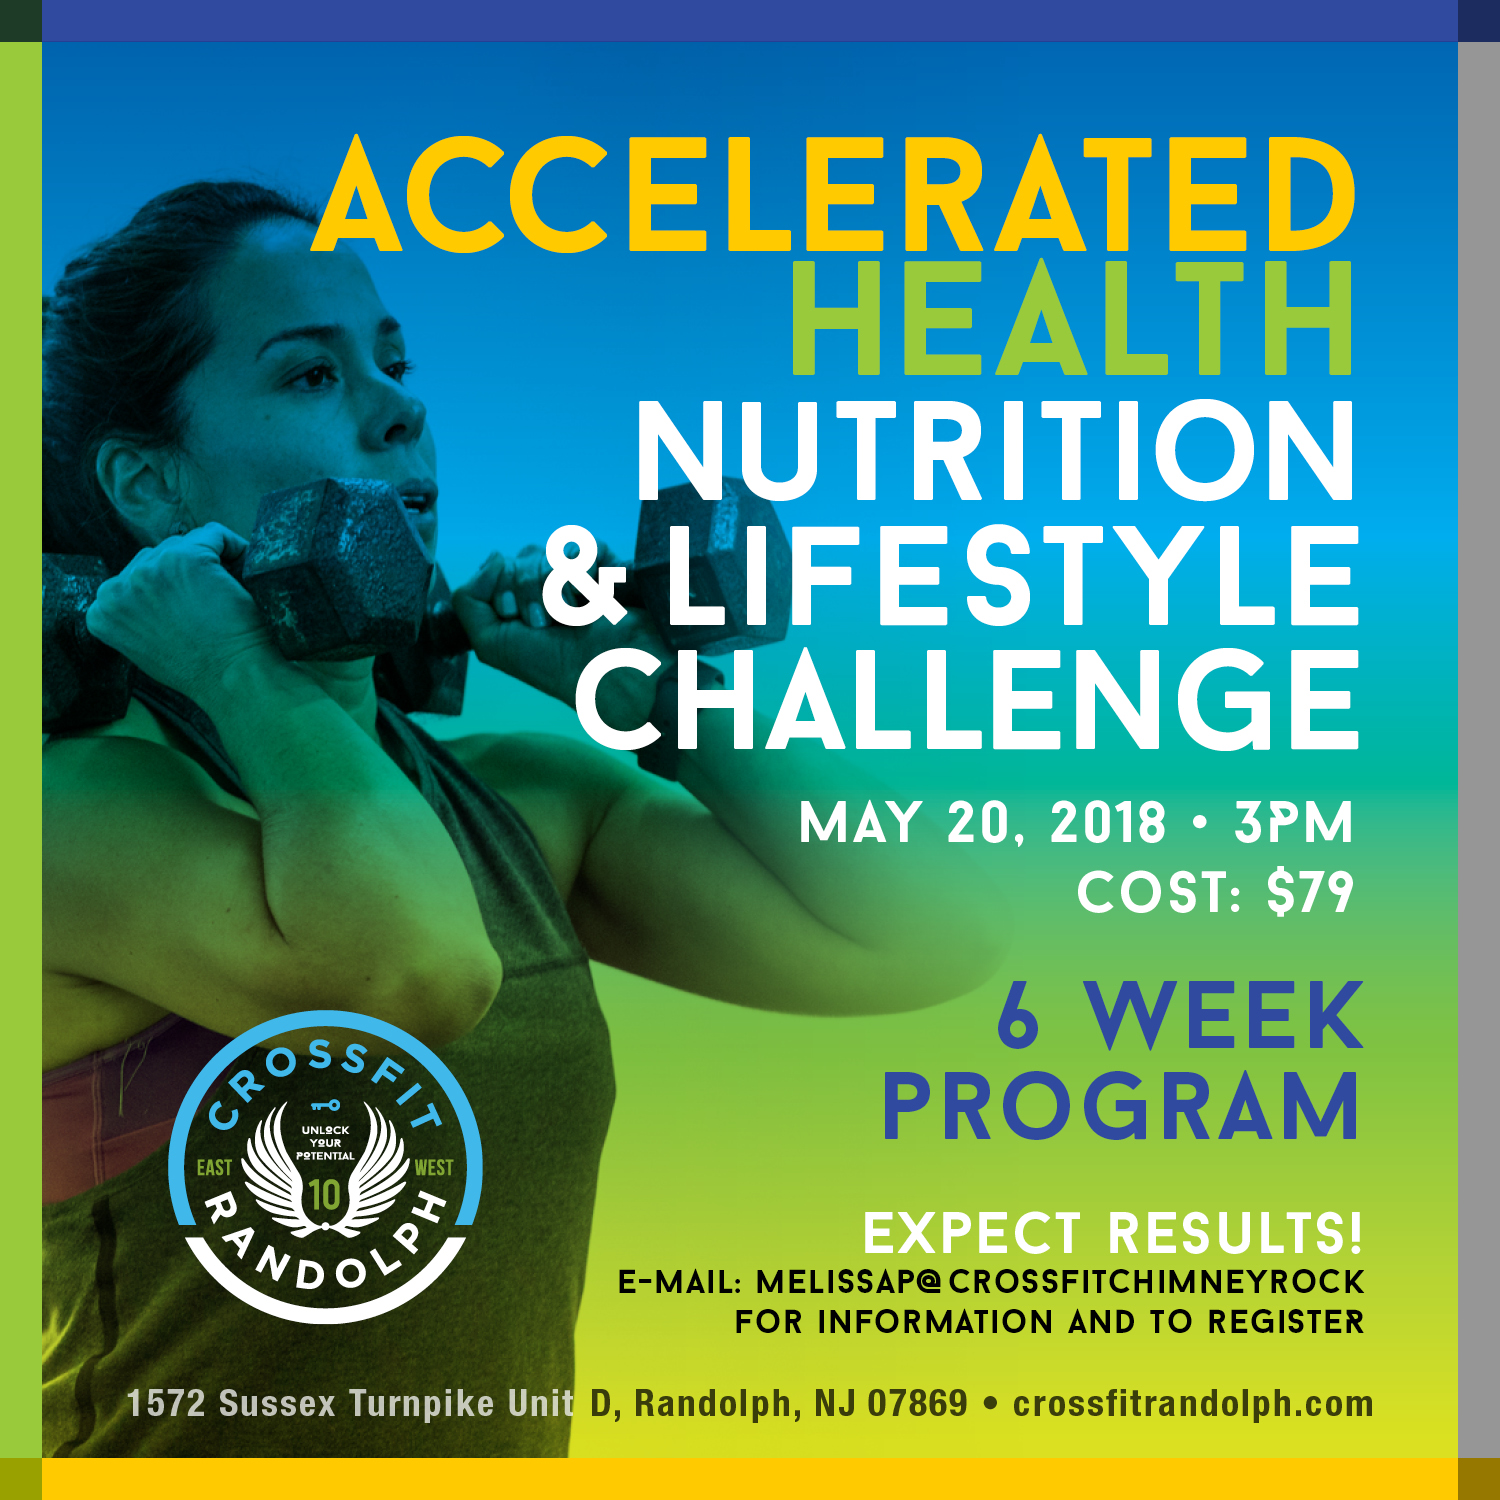 Accelerated Health Lifestyle and Nutrition Challenge